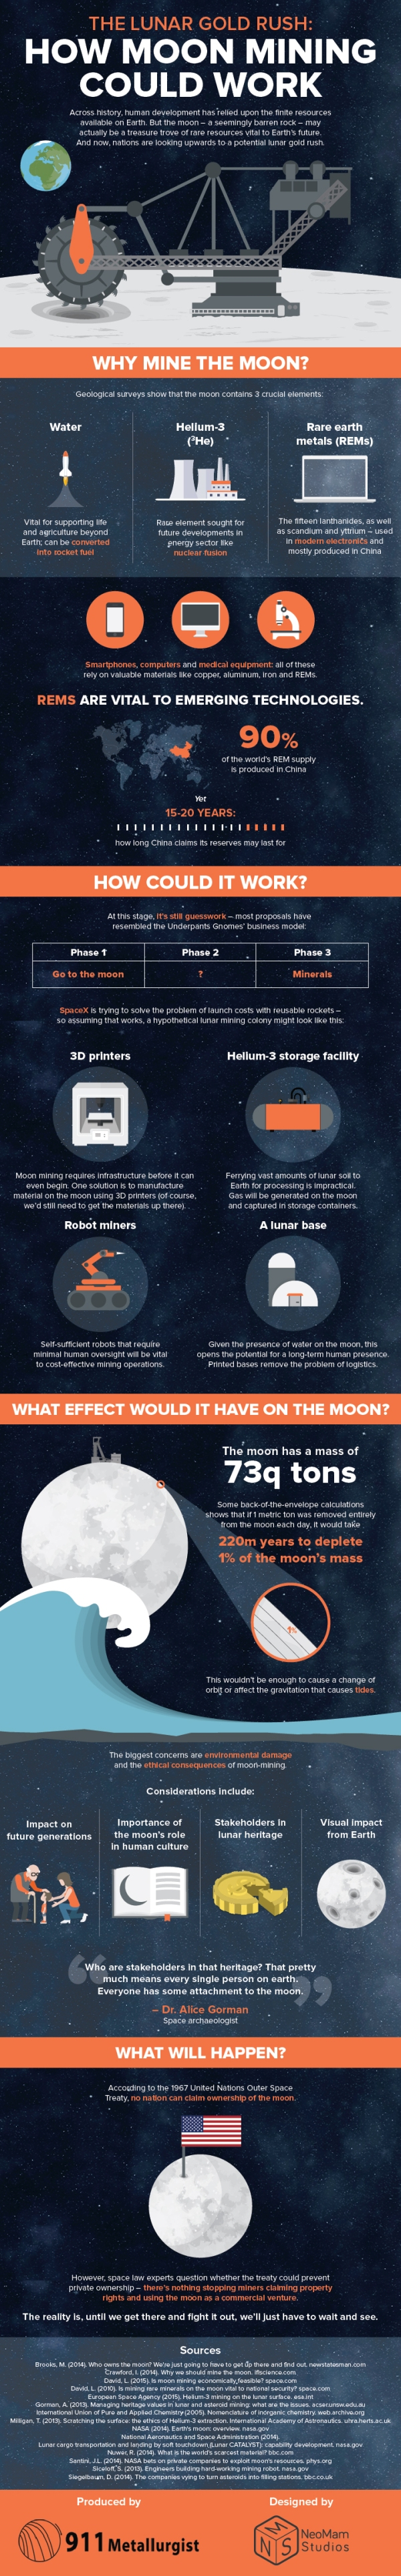 How Moon Mining Could Work –an infographic by NeoMam Studios (neomam.com)